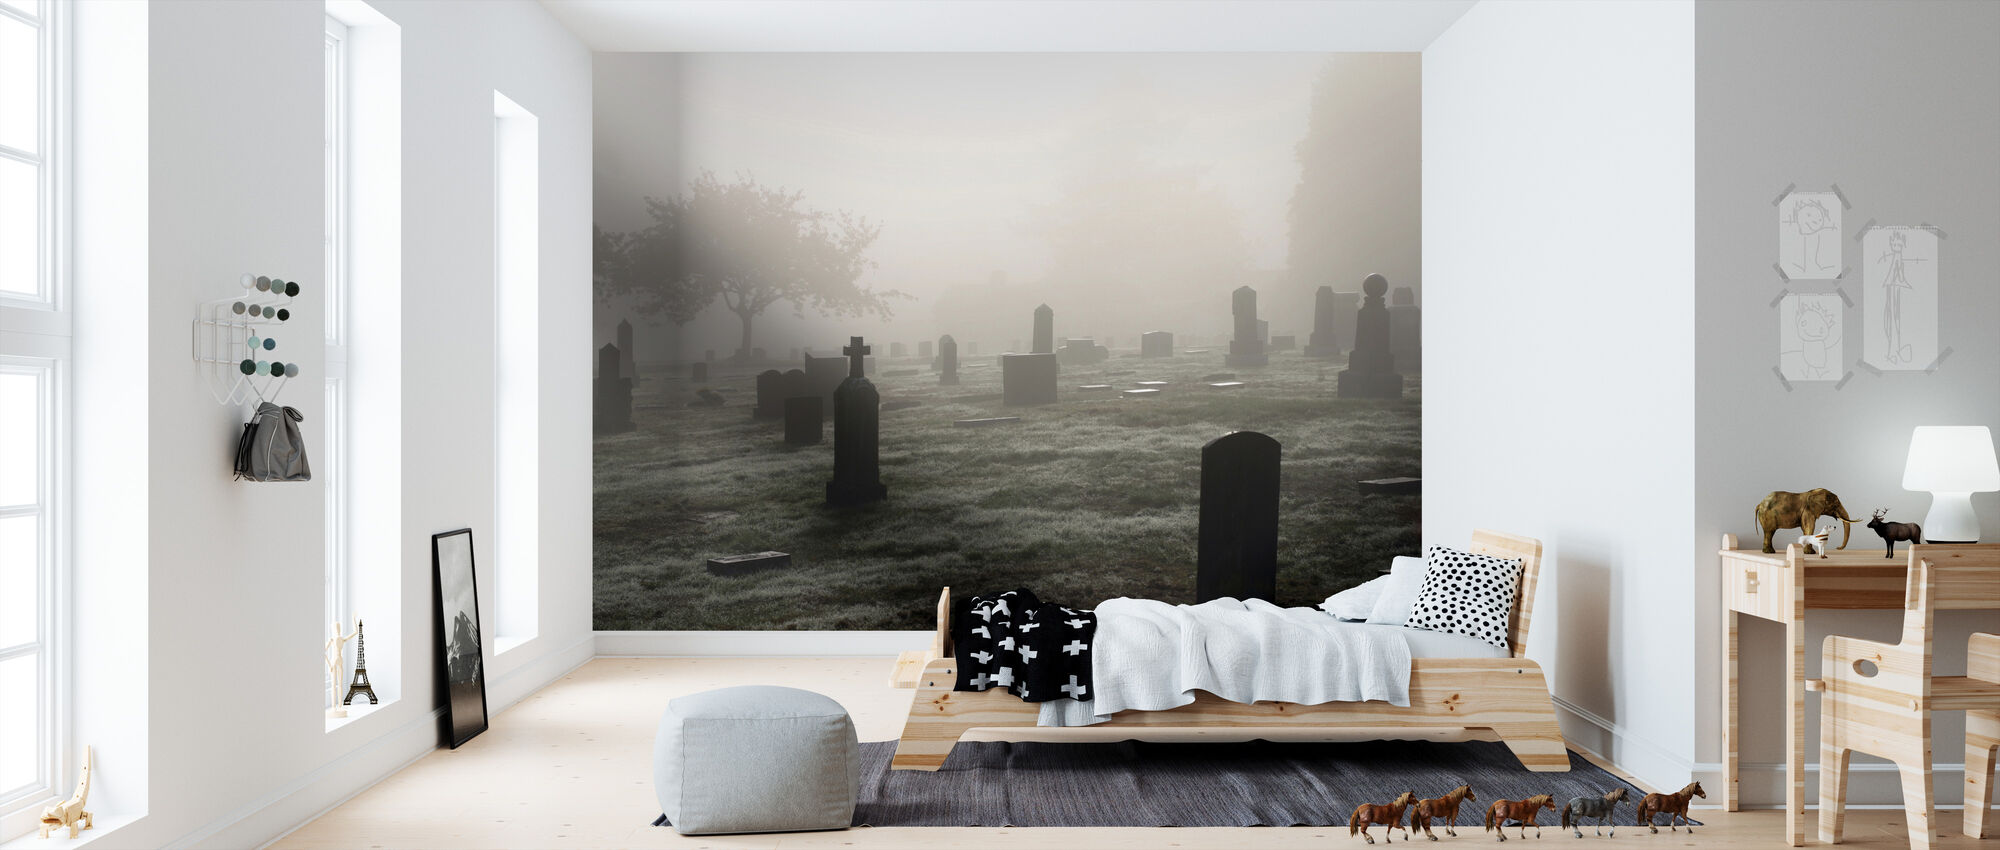 Graveyard in October - Wallpaper - Kids Room